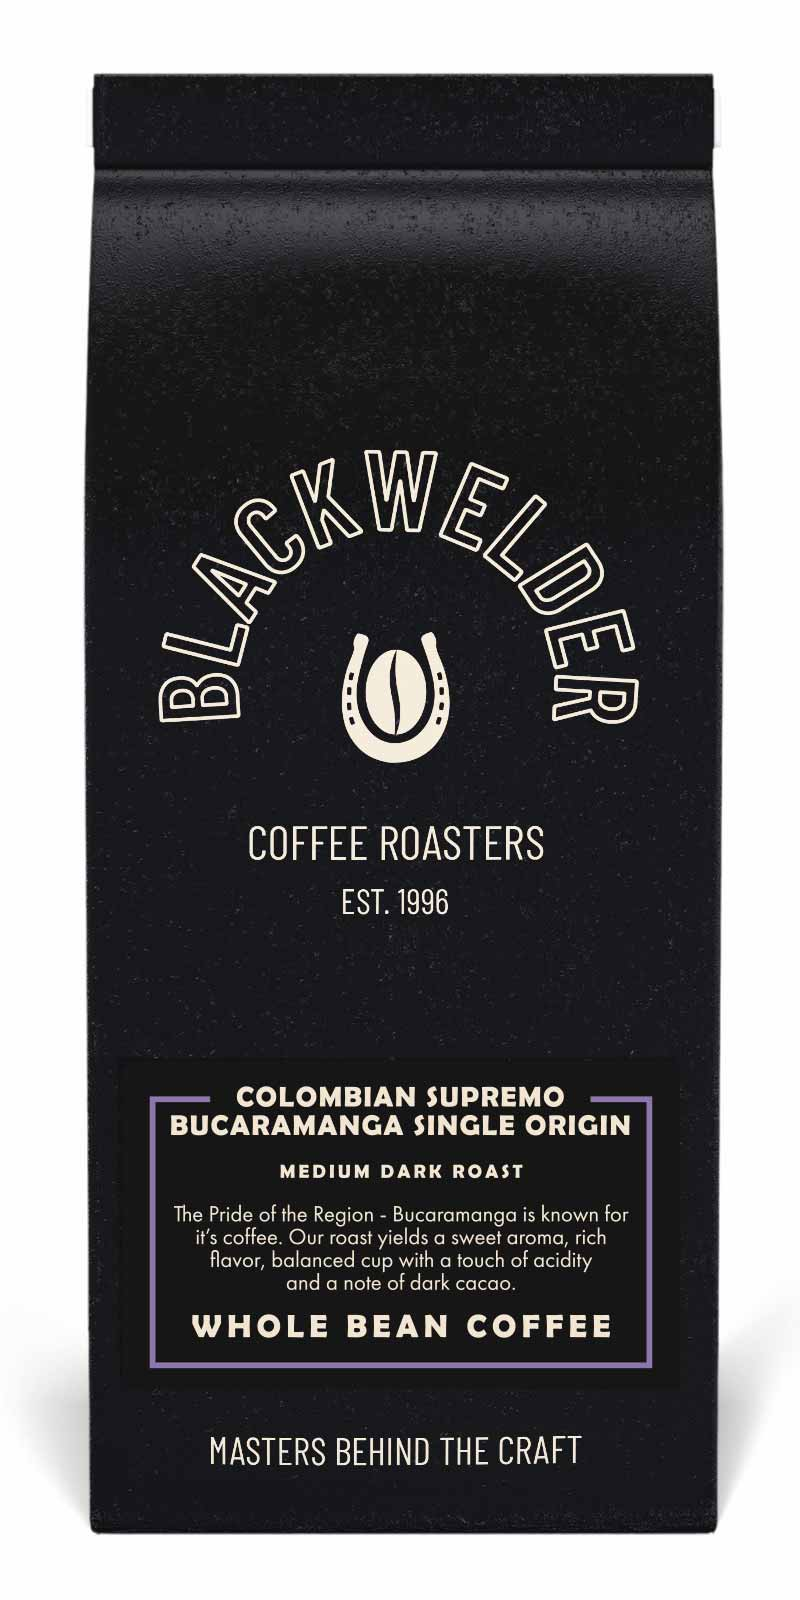 Colombian Supremo Bucaramanga Single Origin